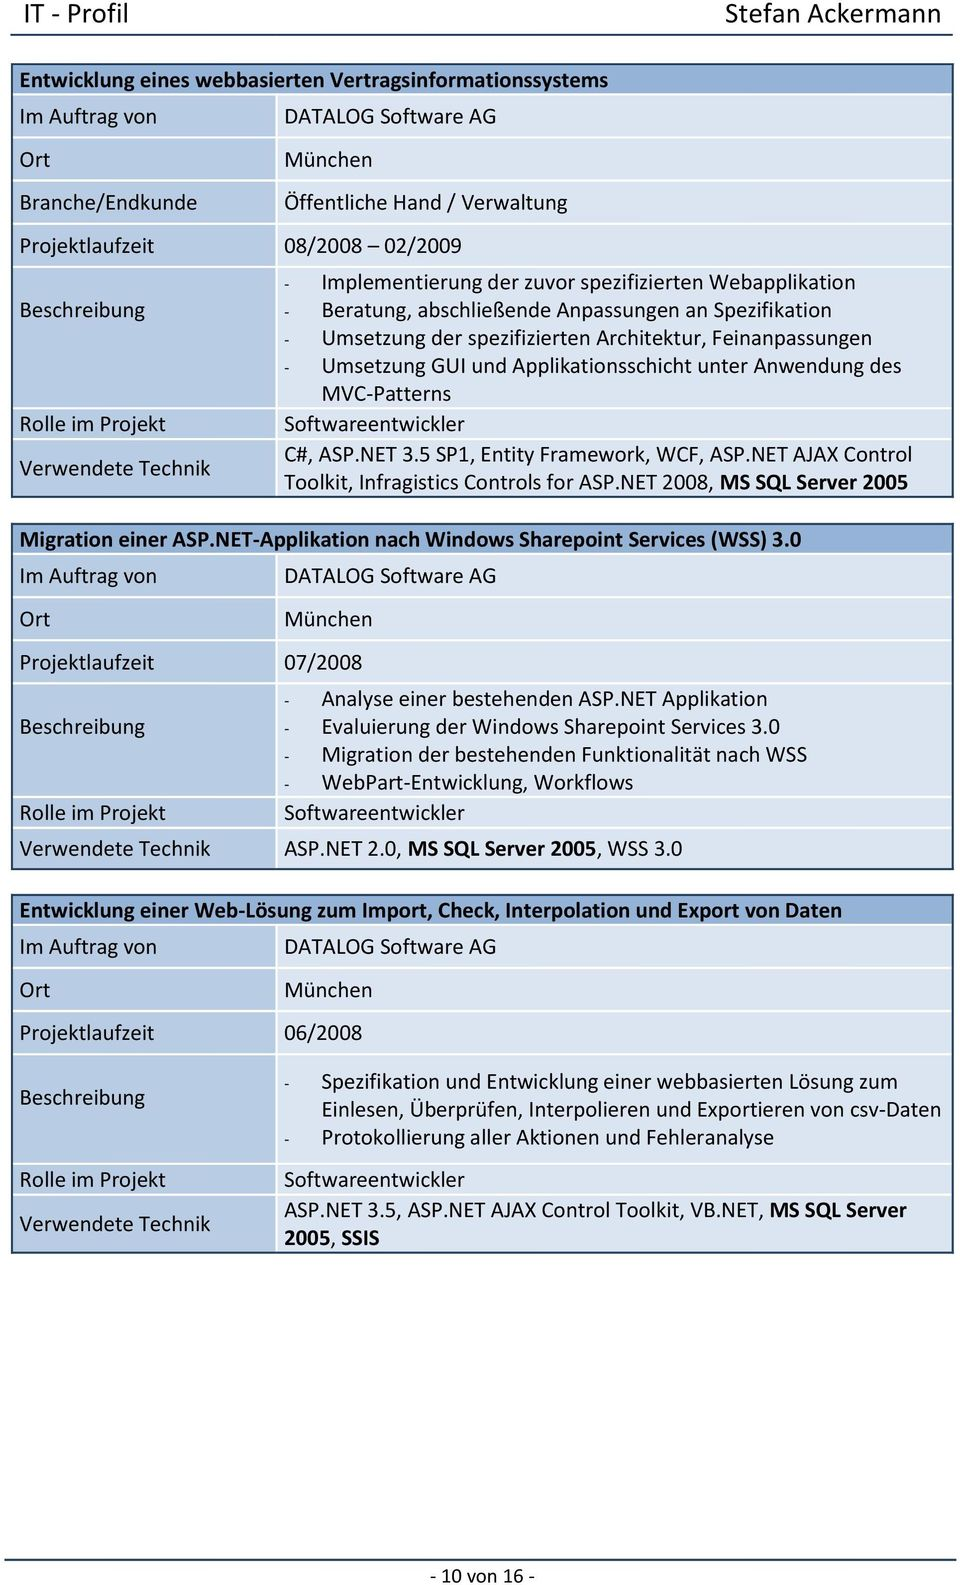 Anwendung des MVC-Patterns Softwareentwickler C#, ASP.NET 3.5 SP1, Entity Framework, WCF, ASP.NET AJAX Control Toolkit, Infragistics Controls for ASP.NET 2008, MS SQL Server 2005 Migration einer ASP.